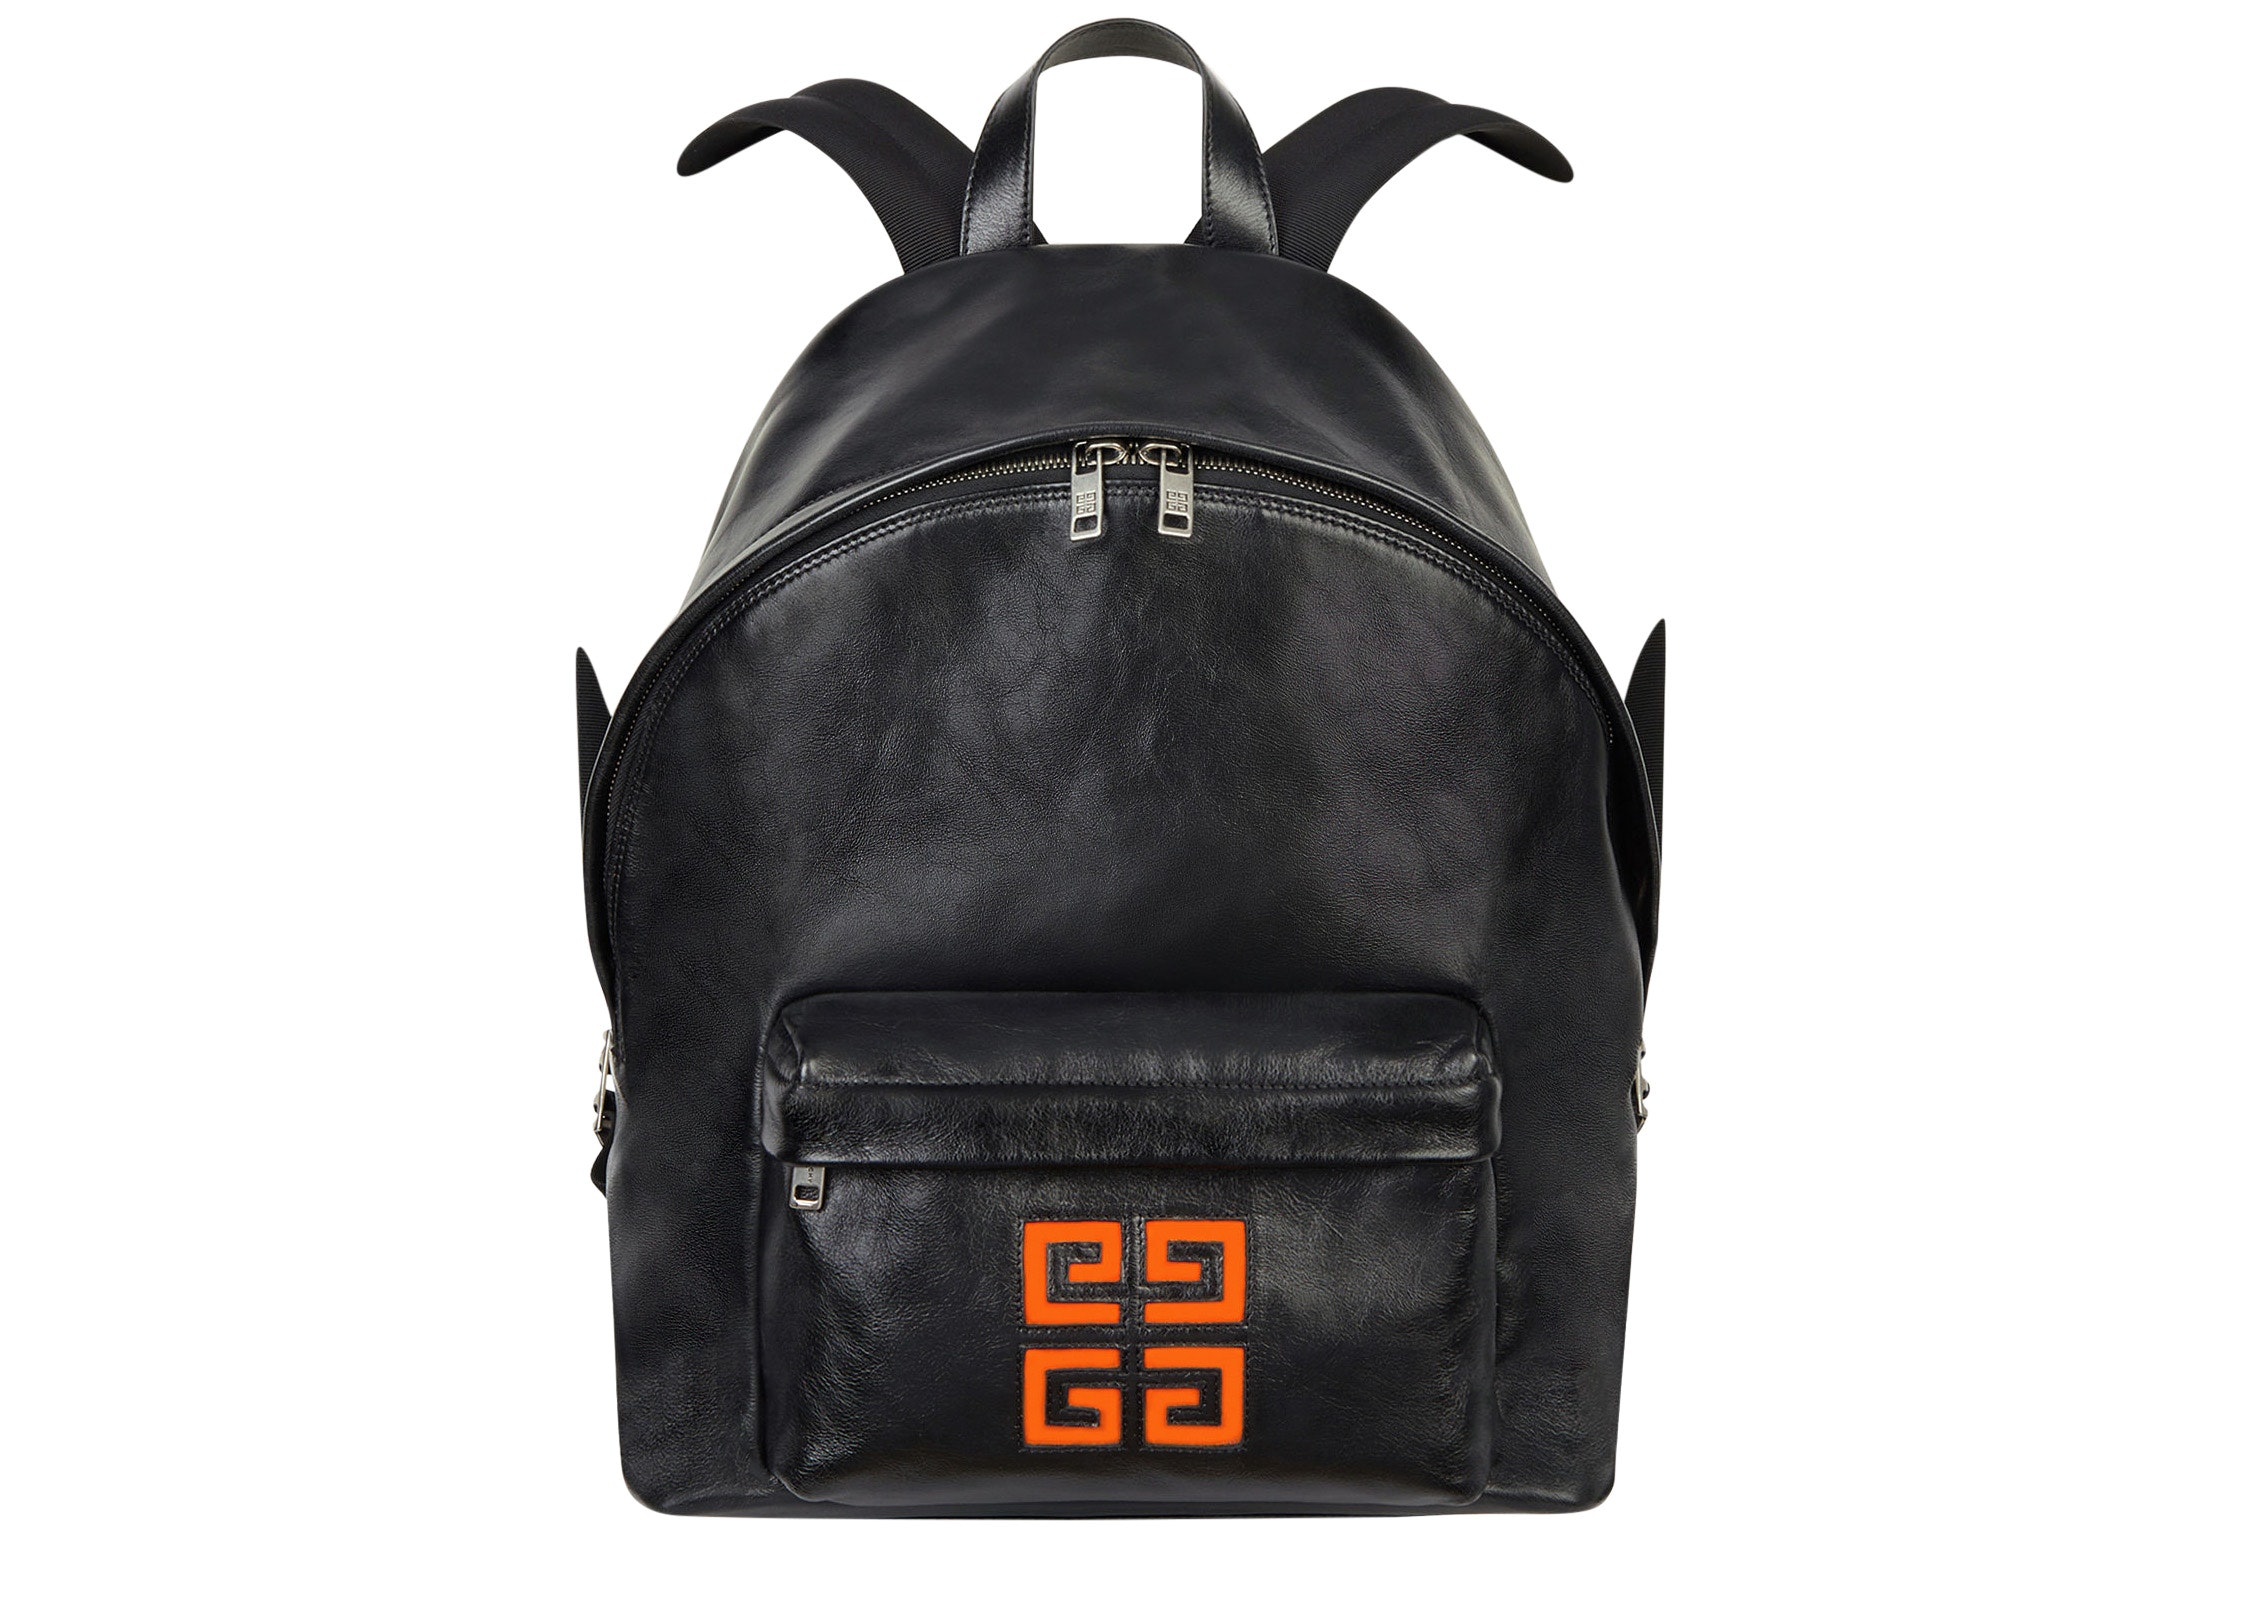 Givenchy 4G Backpack Leather Black